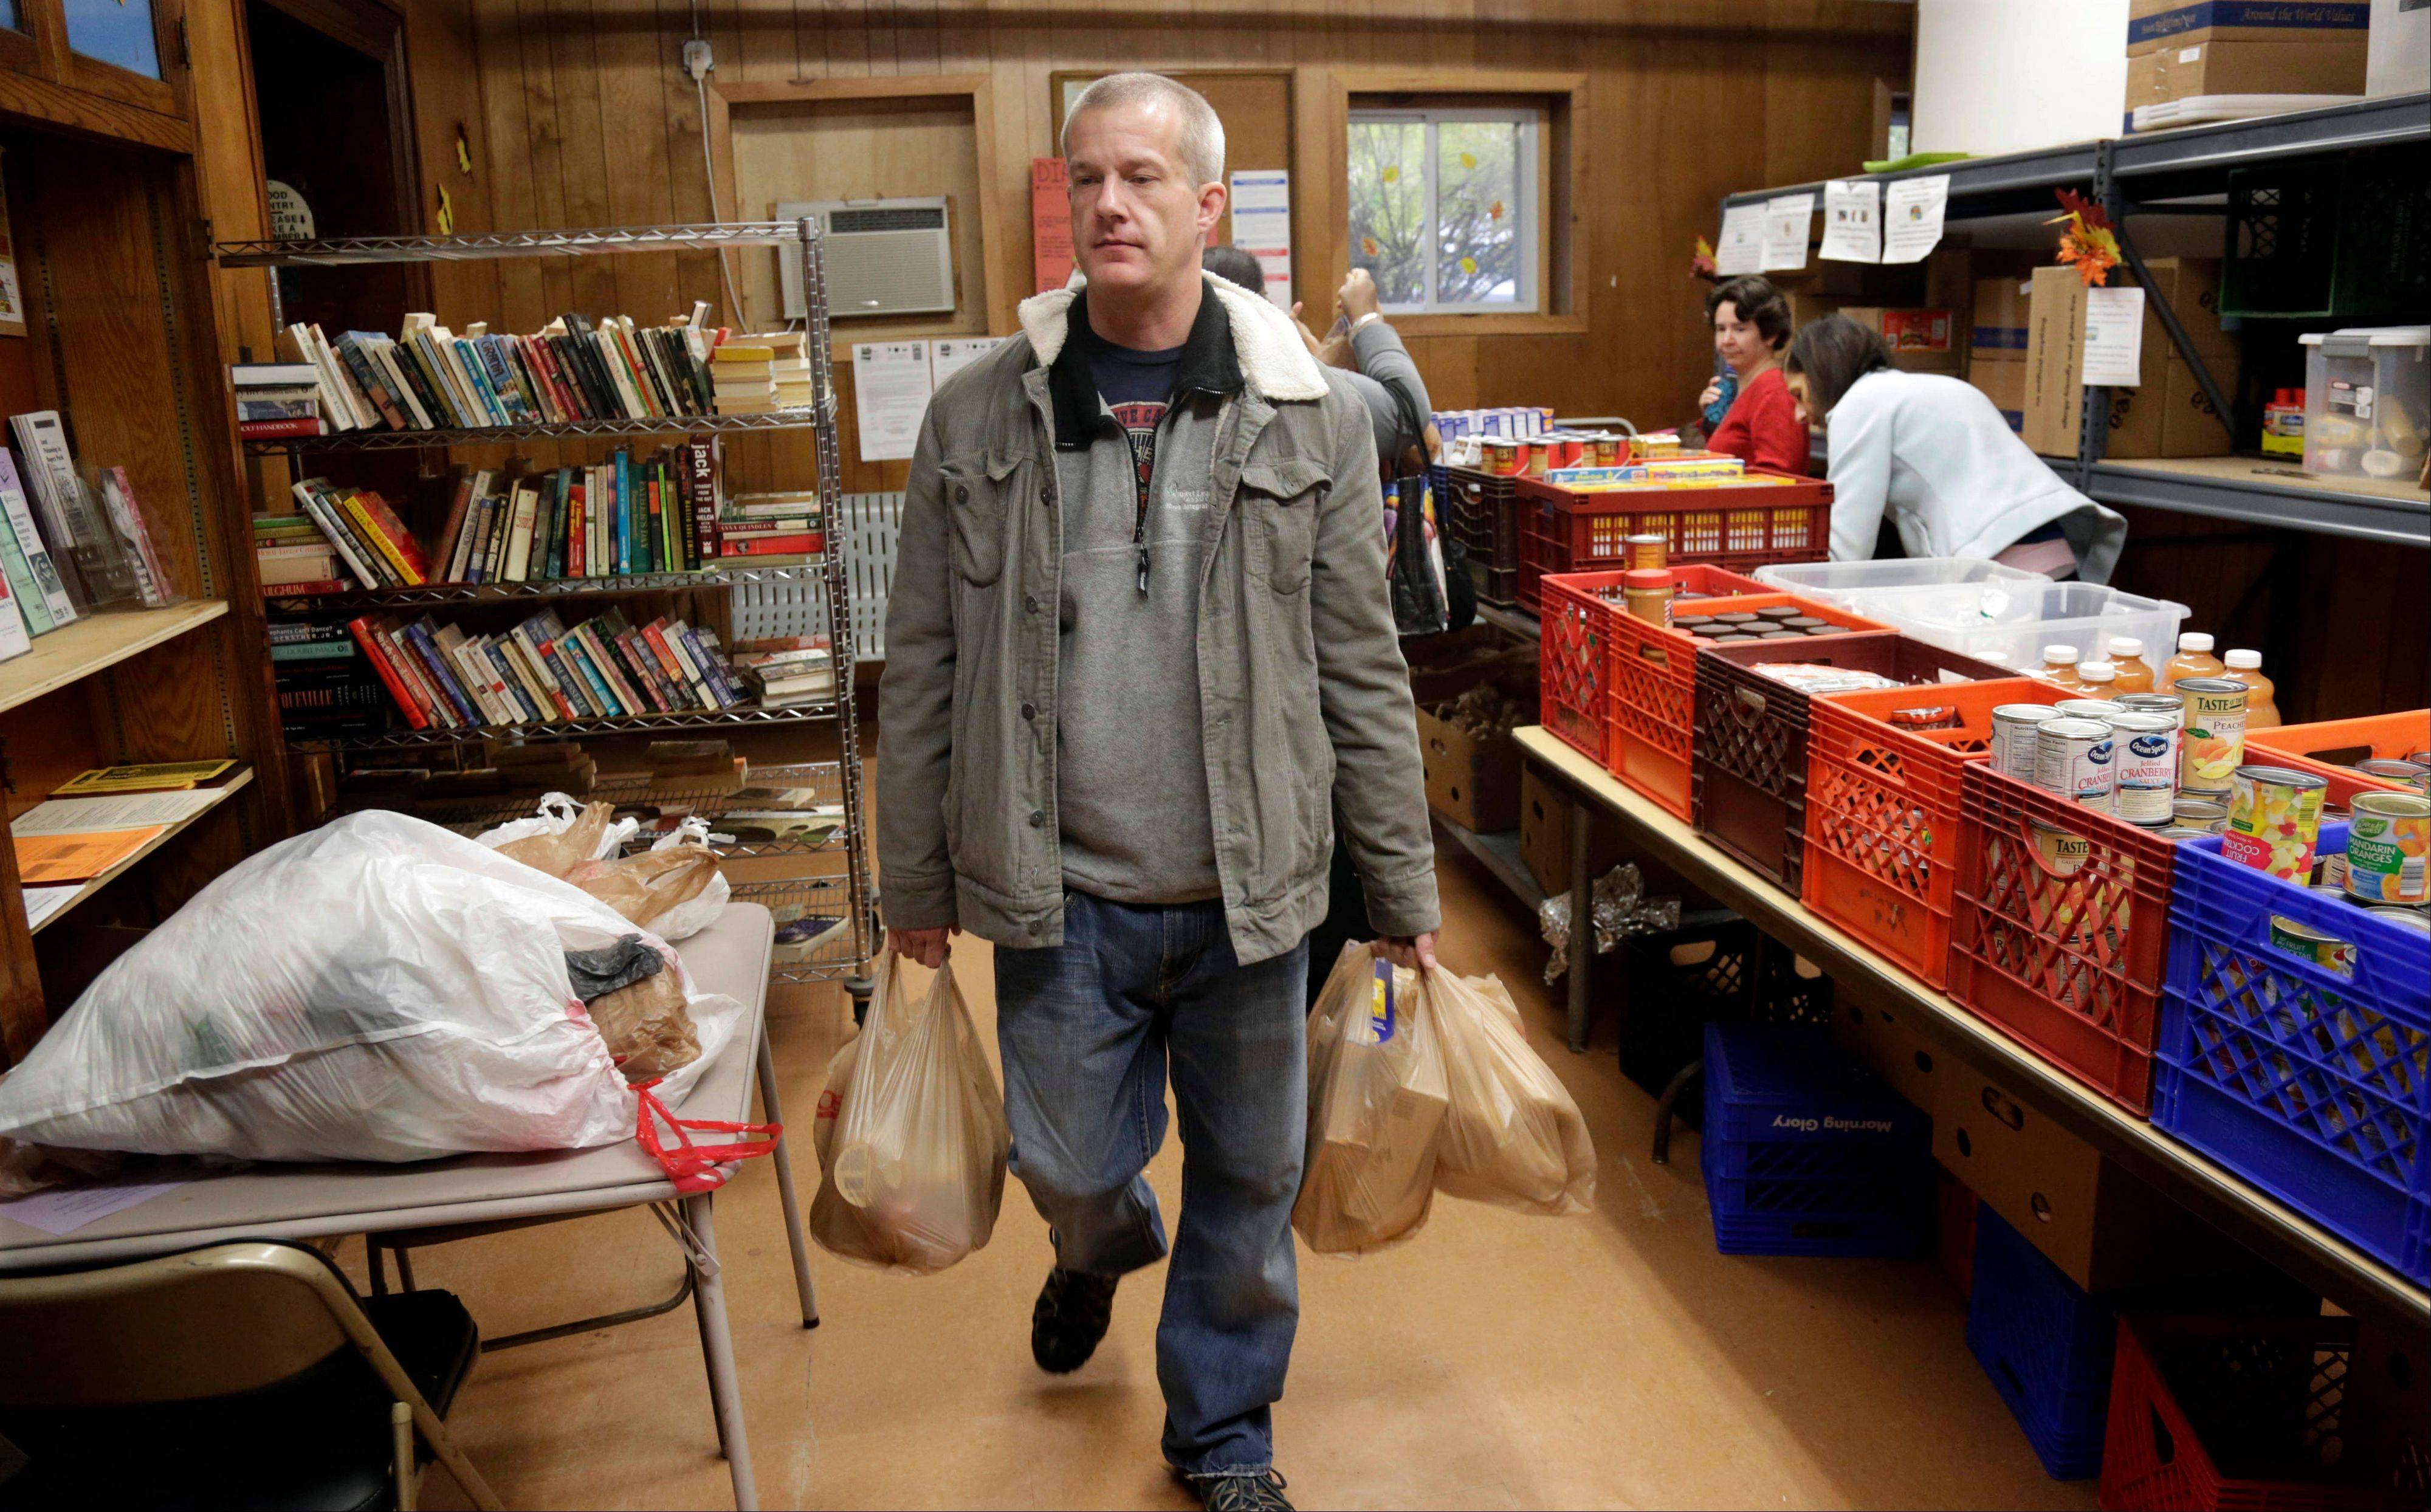 Larry Bossom, 41, who lost his job a few month ago, leaves the St. Ignatius food pantry Friday with bags of items. Bossom is relying on food stamps and the food bank to help him until he finds work again.